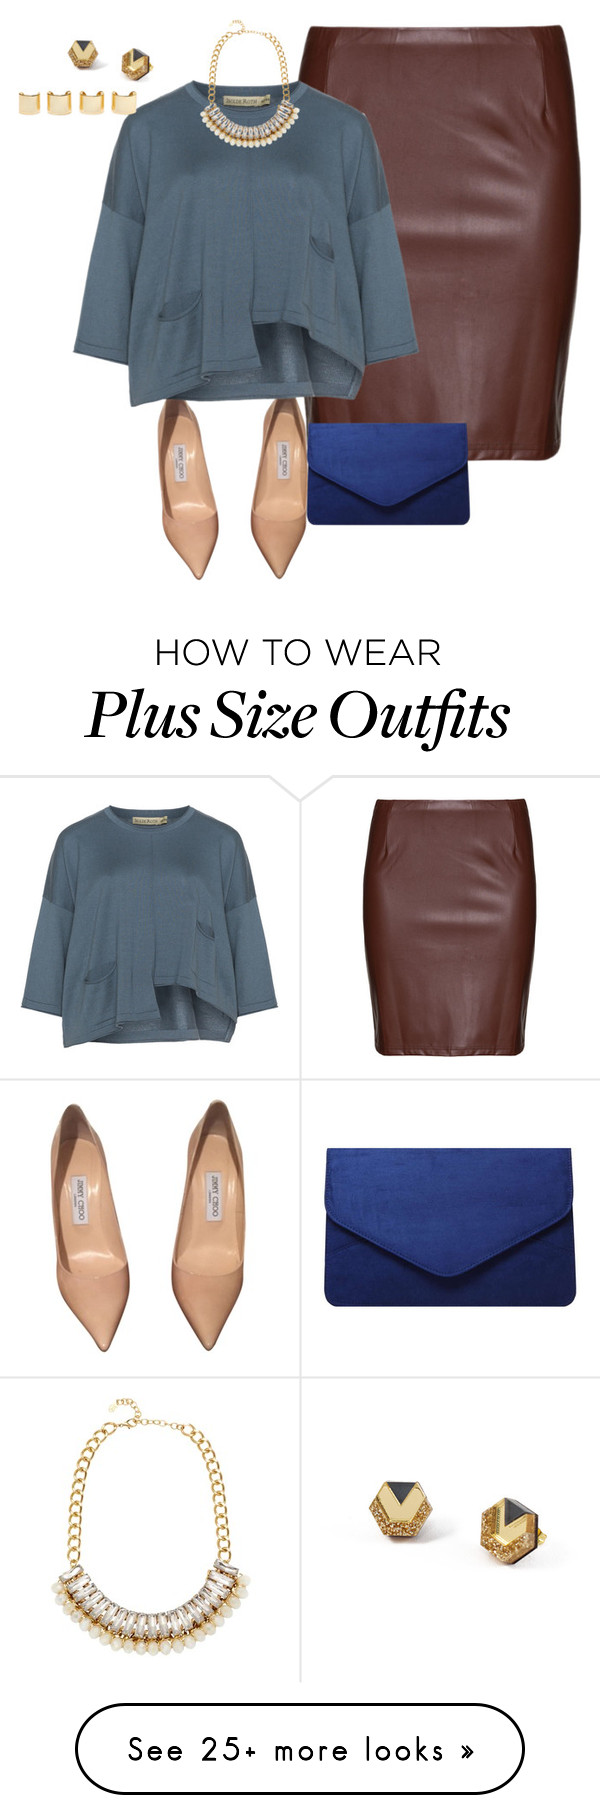 """plus size something different"" by kristie-payne on Polyvore featuring Studio, Jimmy Choo, Isolde Roth, Dorothy Perkins, Adele Marie, Wolf & Moon, Luv Aj, women's clothing, women and female"